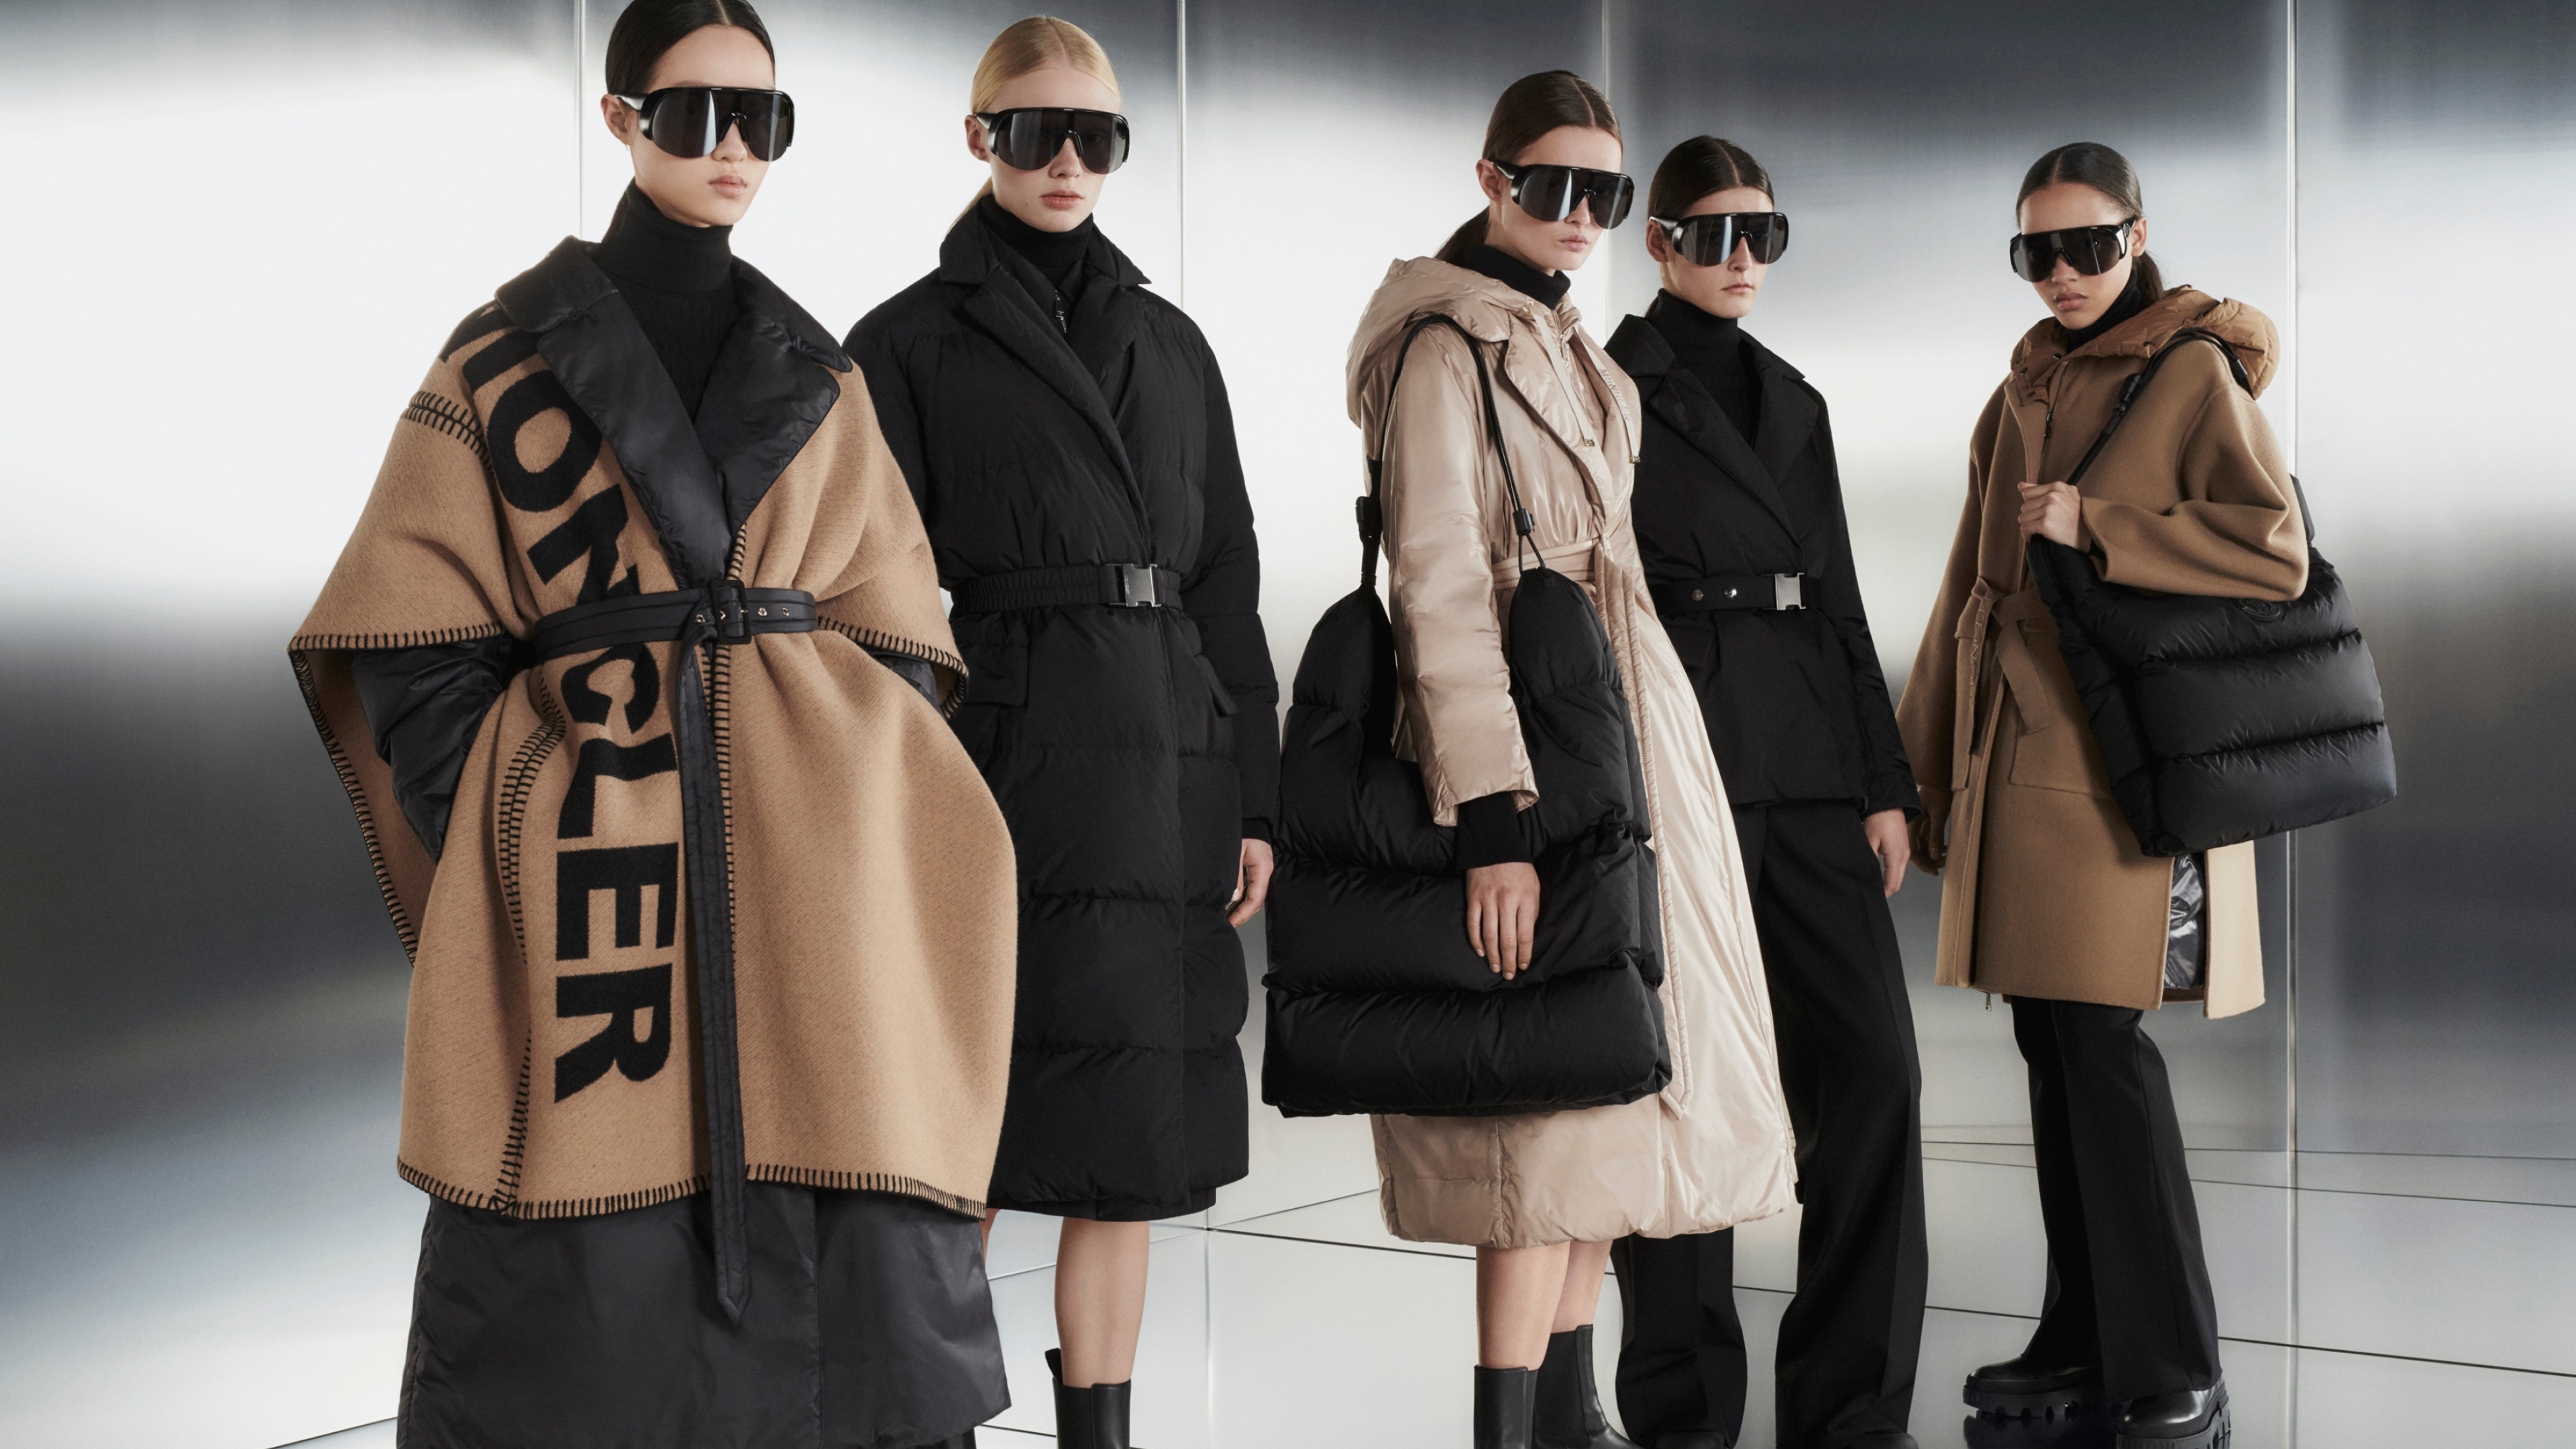 FW21 Collection from Moncler